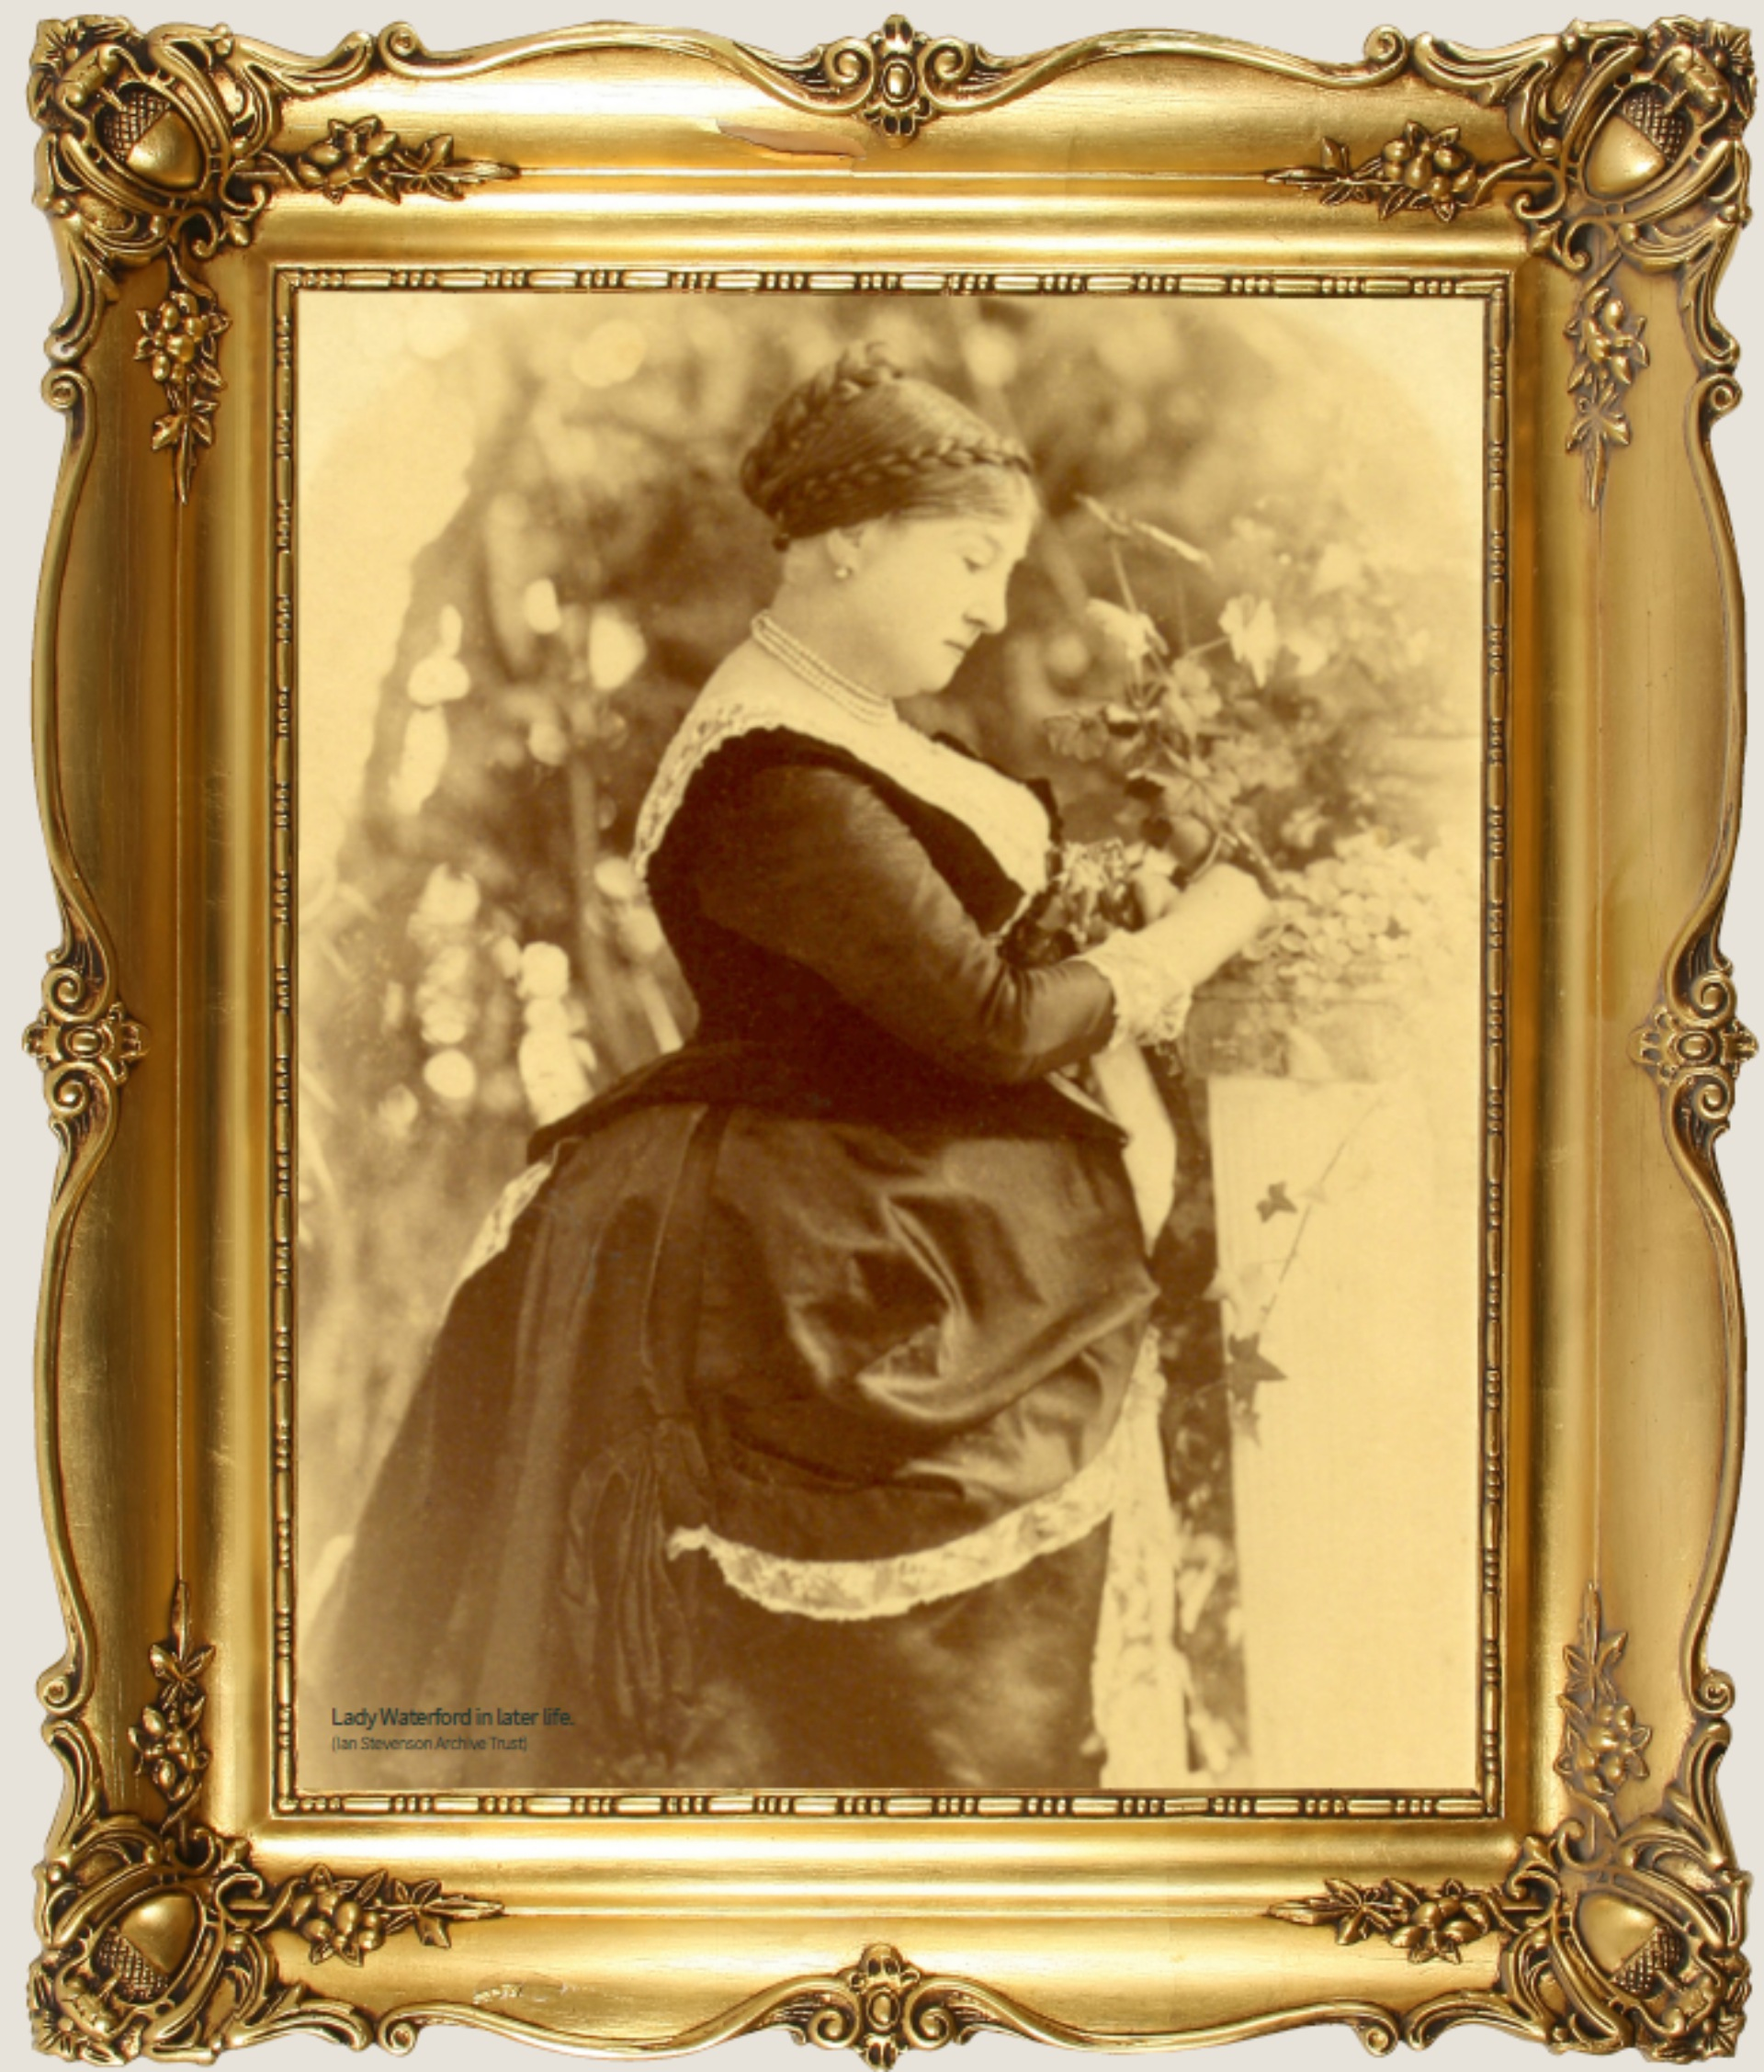 Sepia Portrait of Lady Waterford in long black dress with bustle and hair in a bun, in ornate gold frame